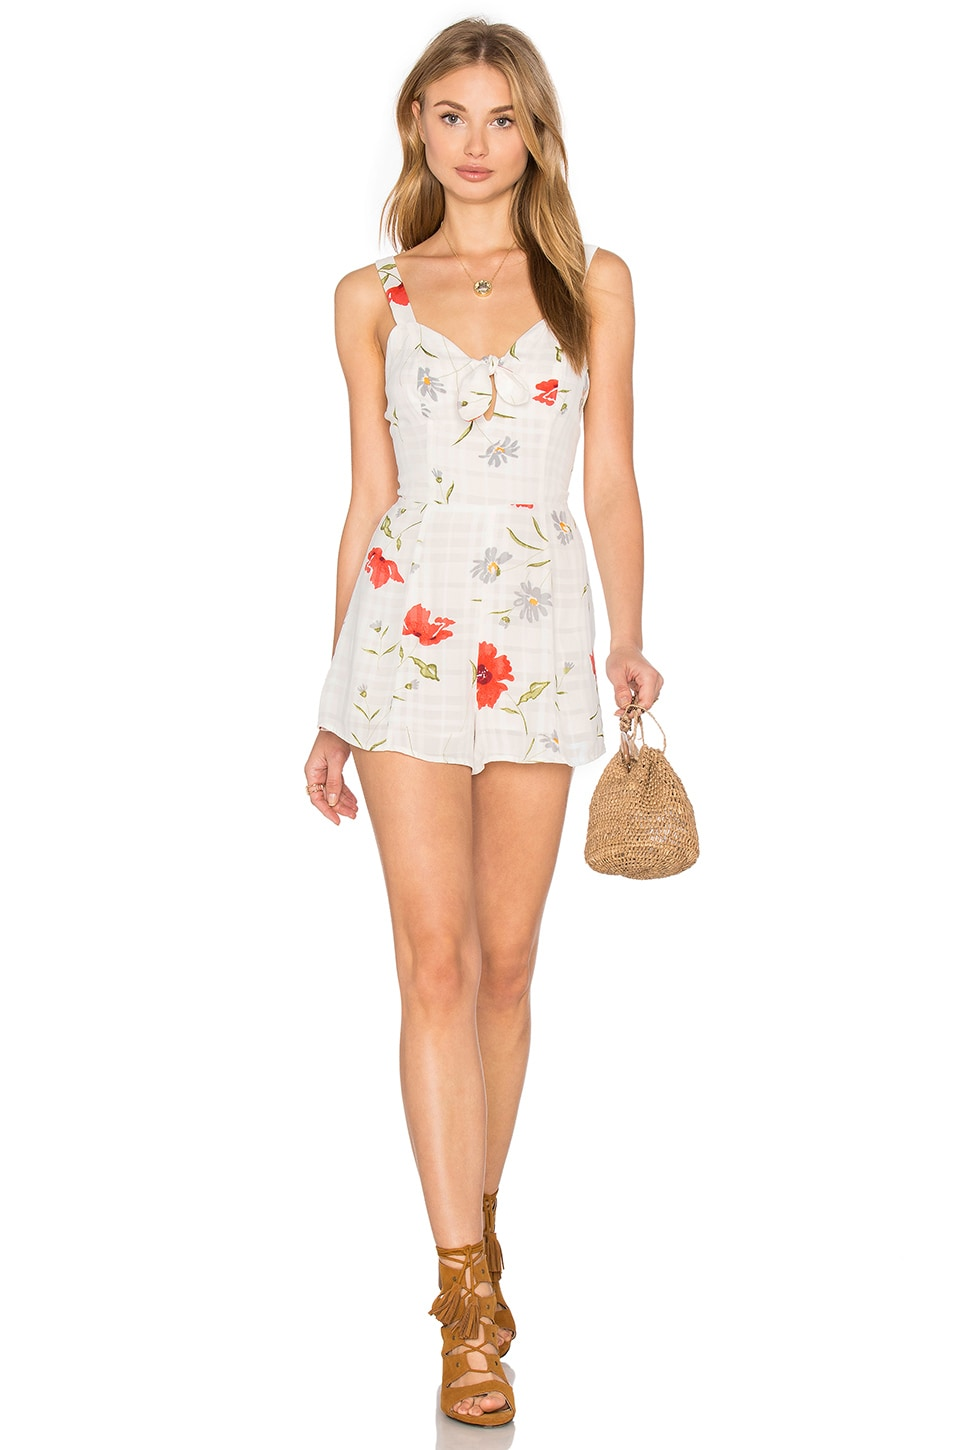 Privacy Please x REVOLVE Avena Romper in Floral